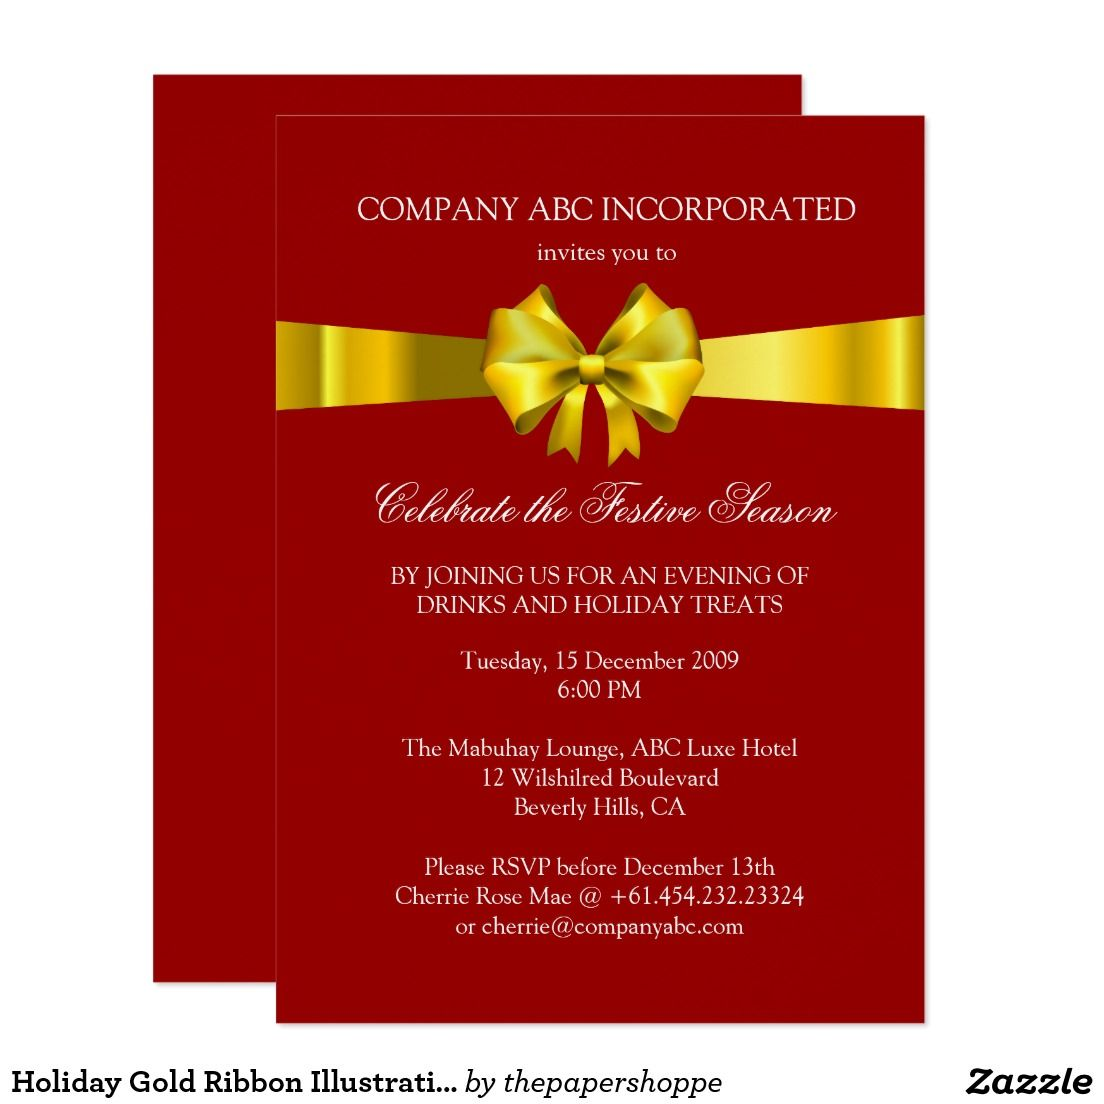 holiday gold ribbon illustration corporate party invitation